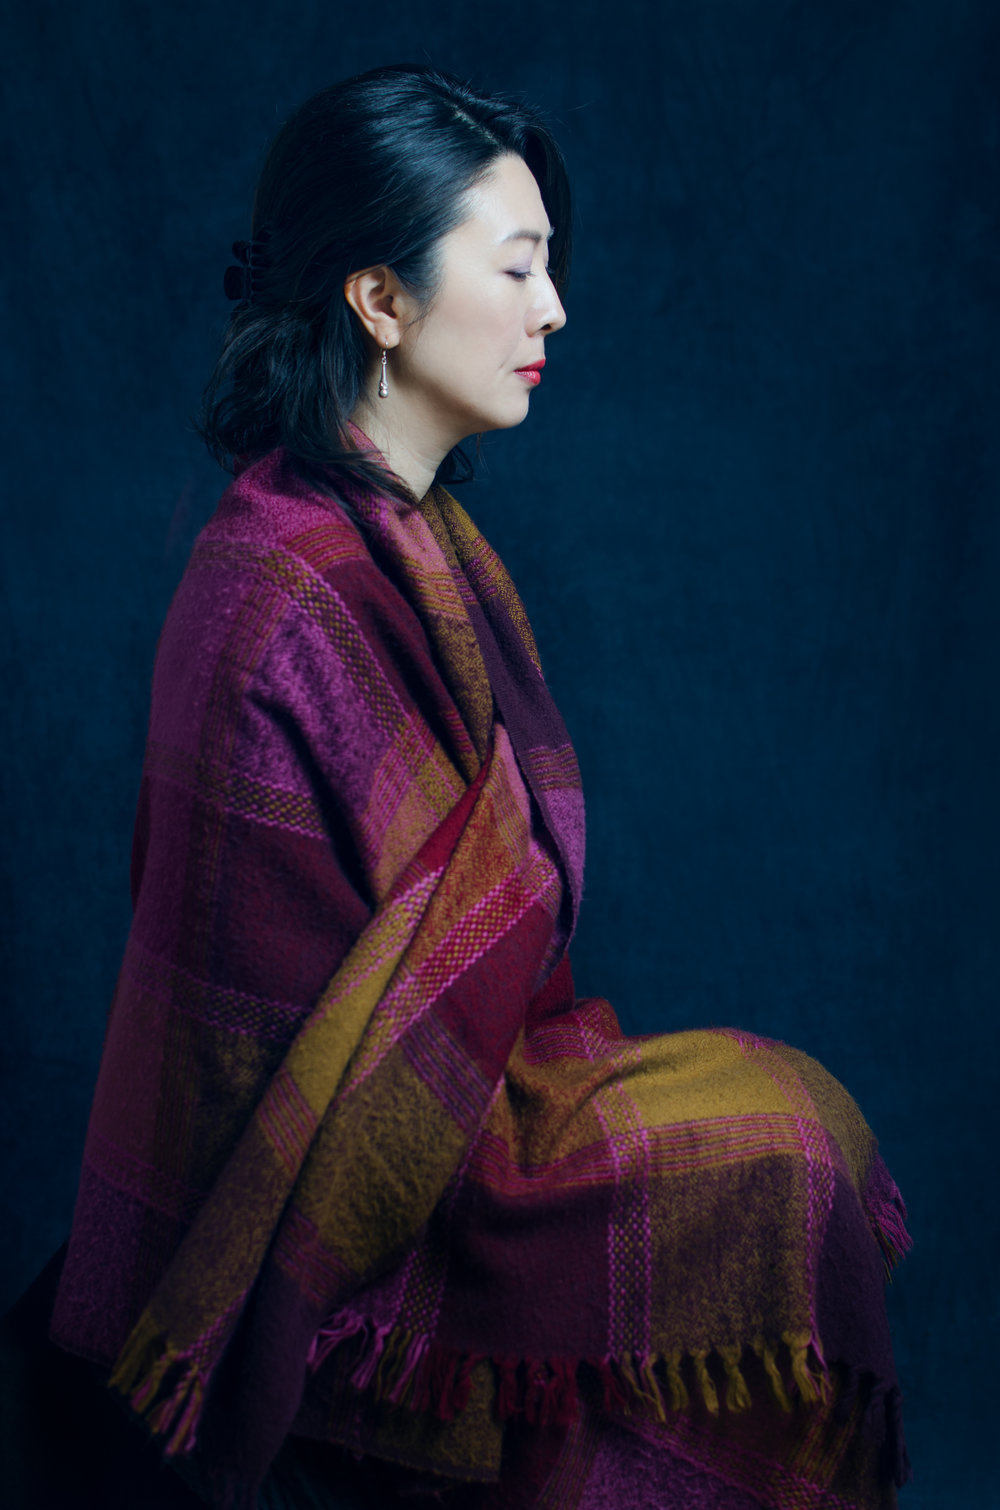 Woman-portrait-zen-scarf